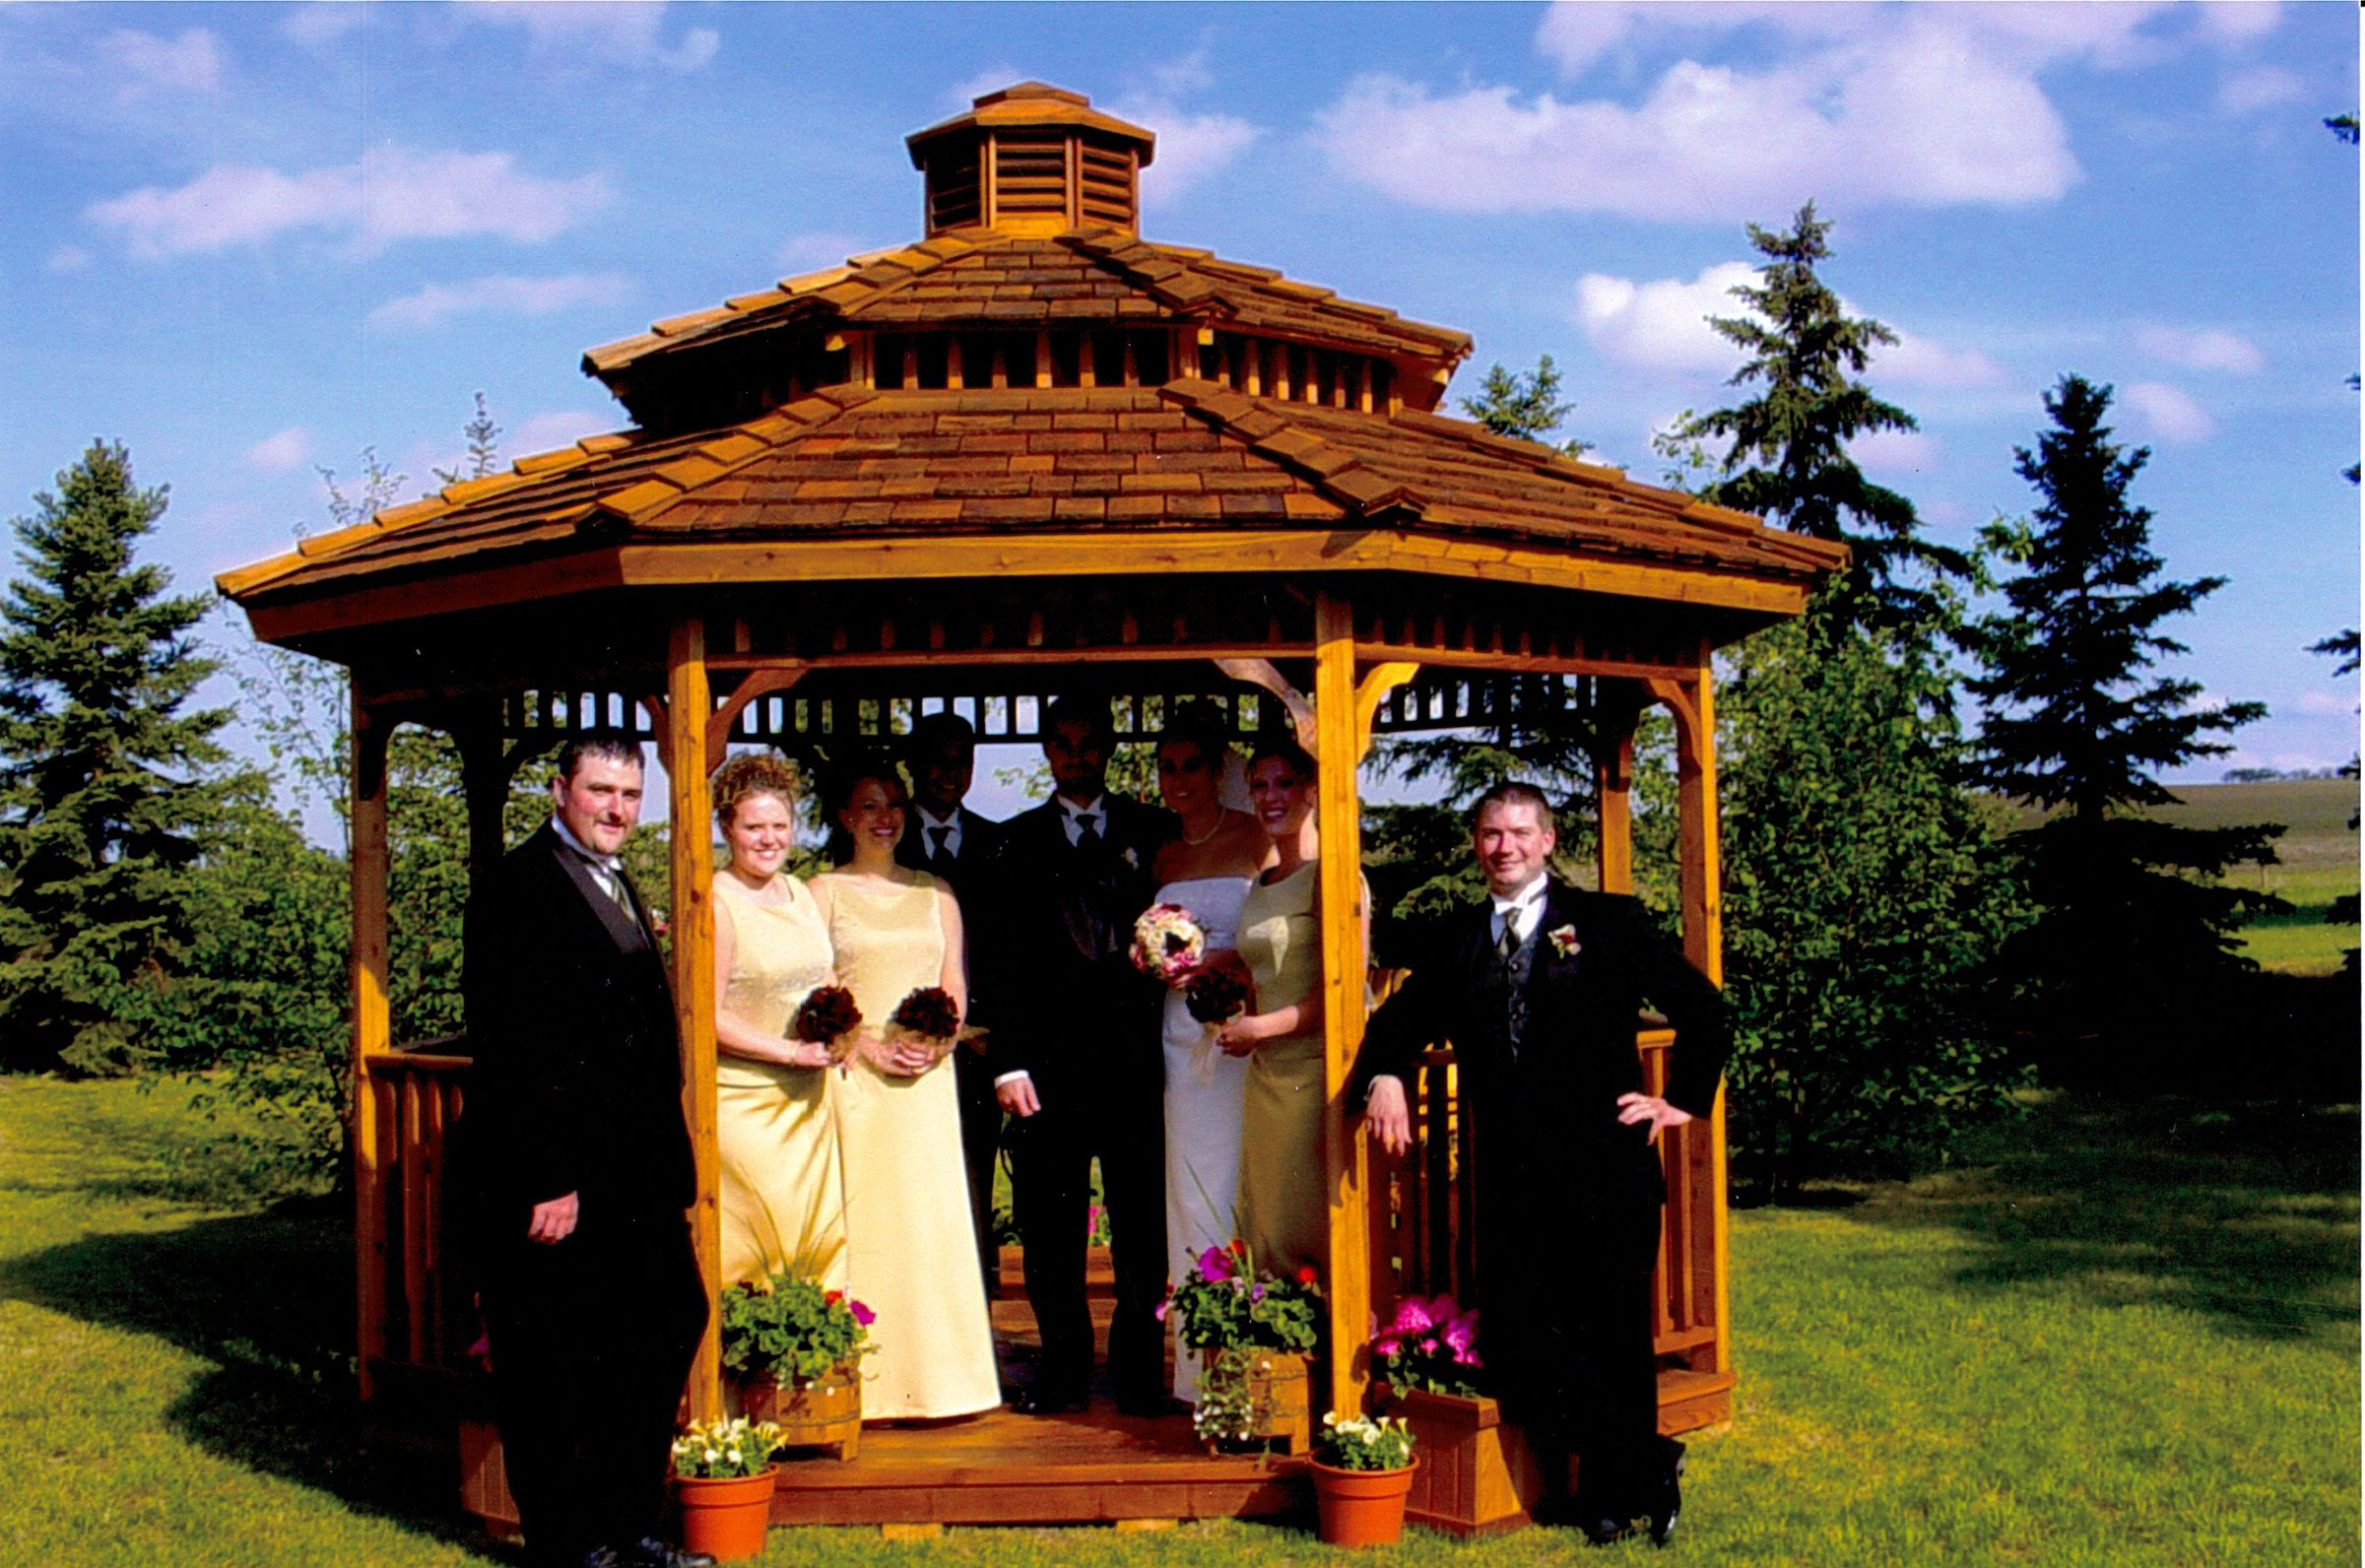 Octagon wedding gazebo kit features two tier roof with ornamental cupola and comes in 12' and 14' sizes.  visit: cedarshed.com